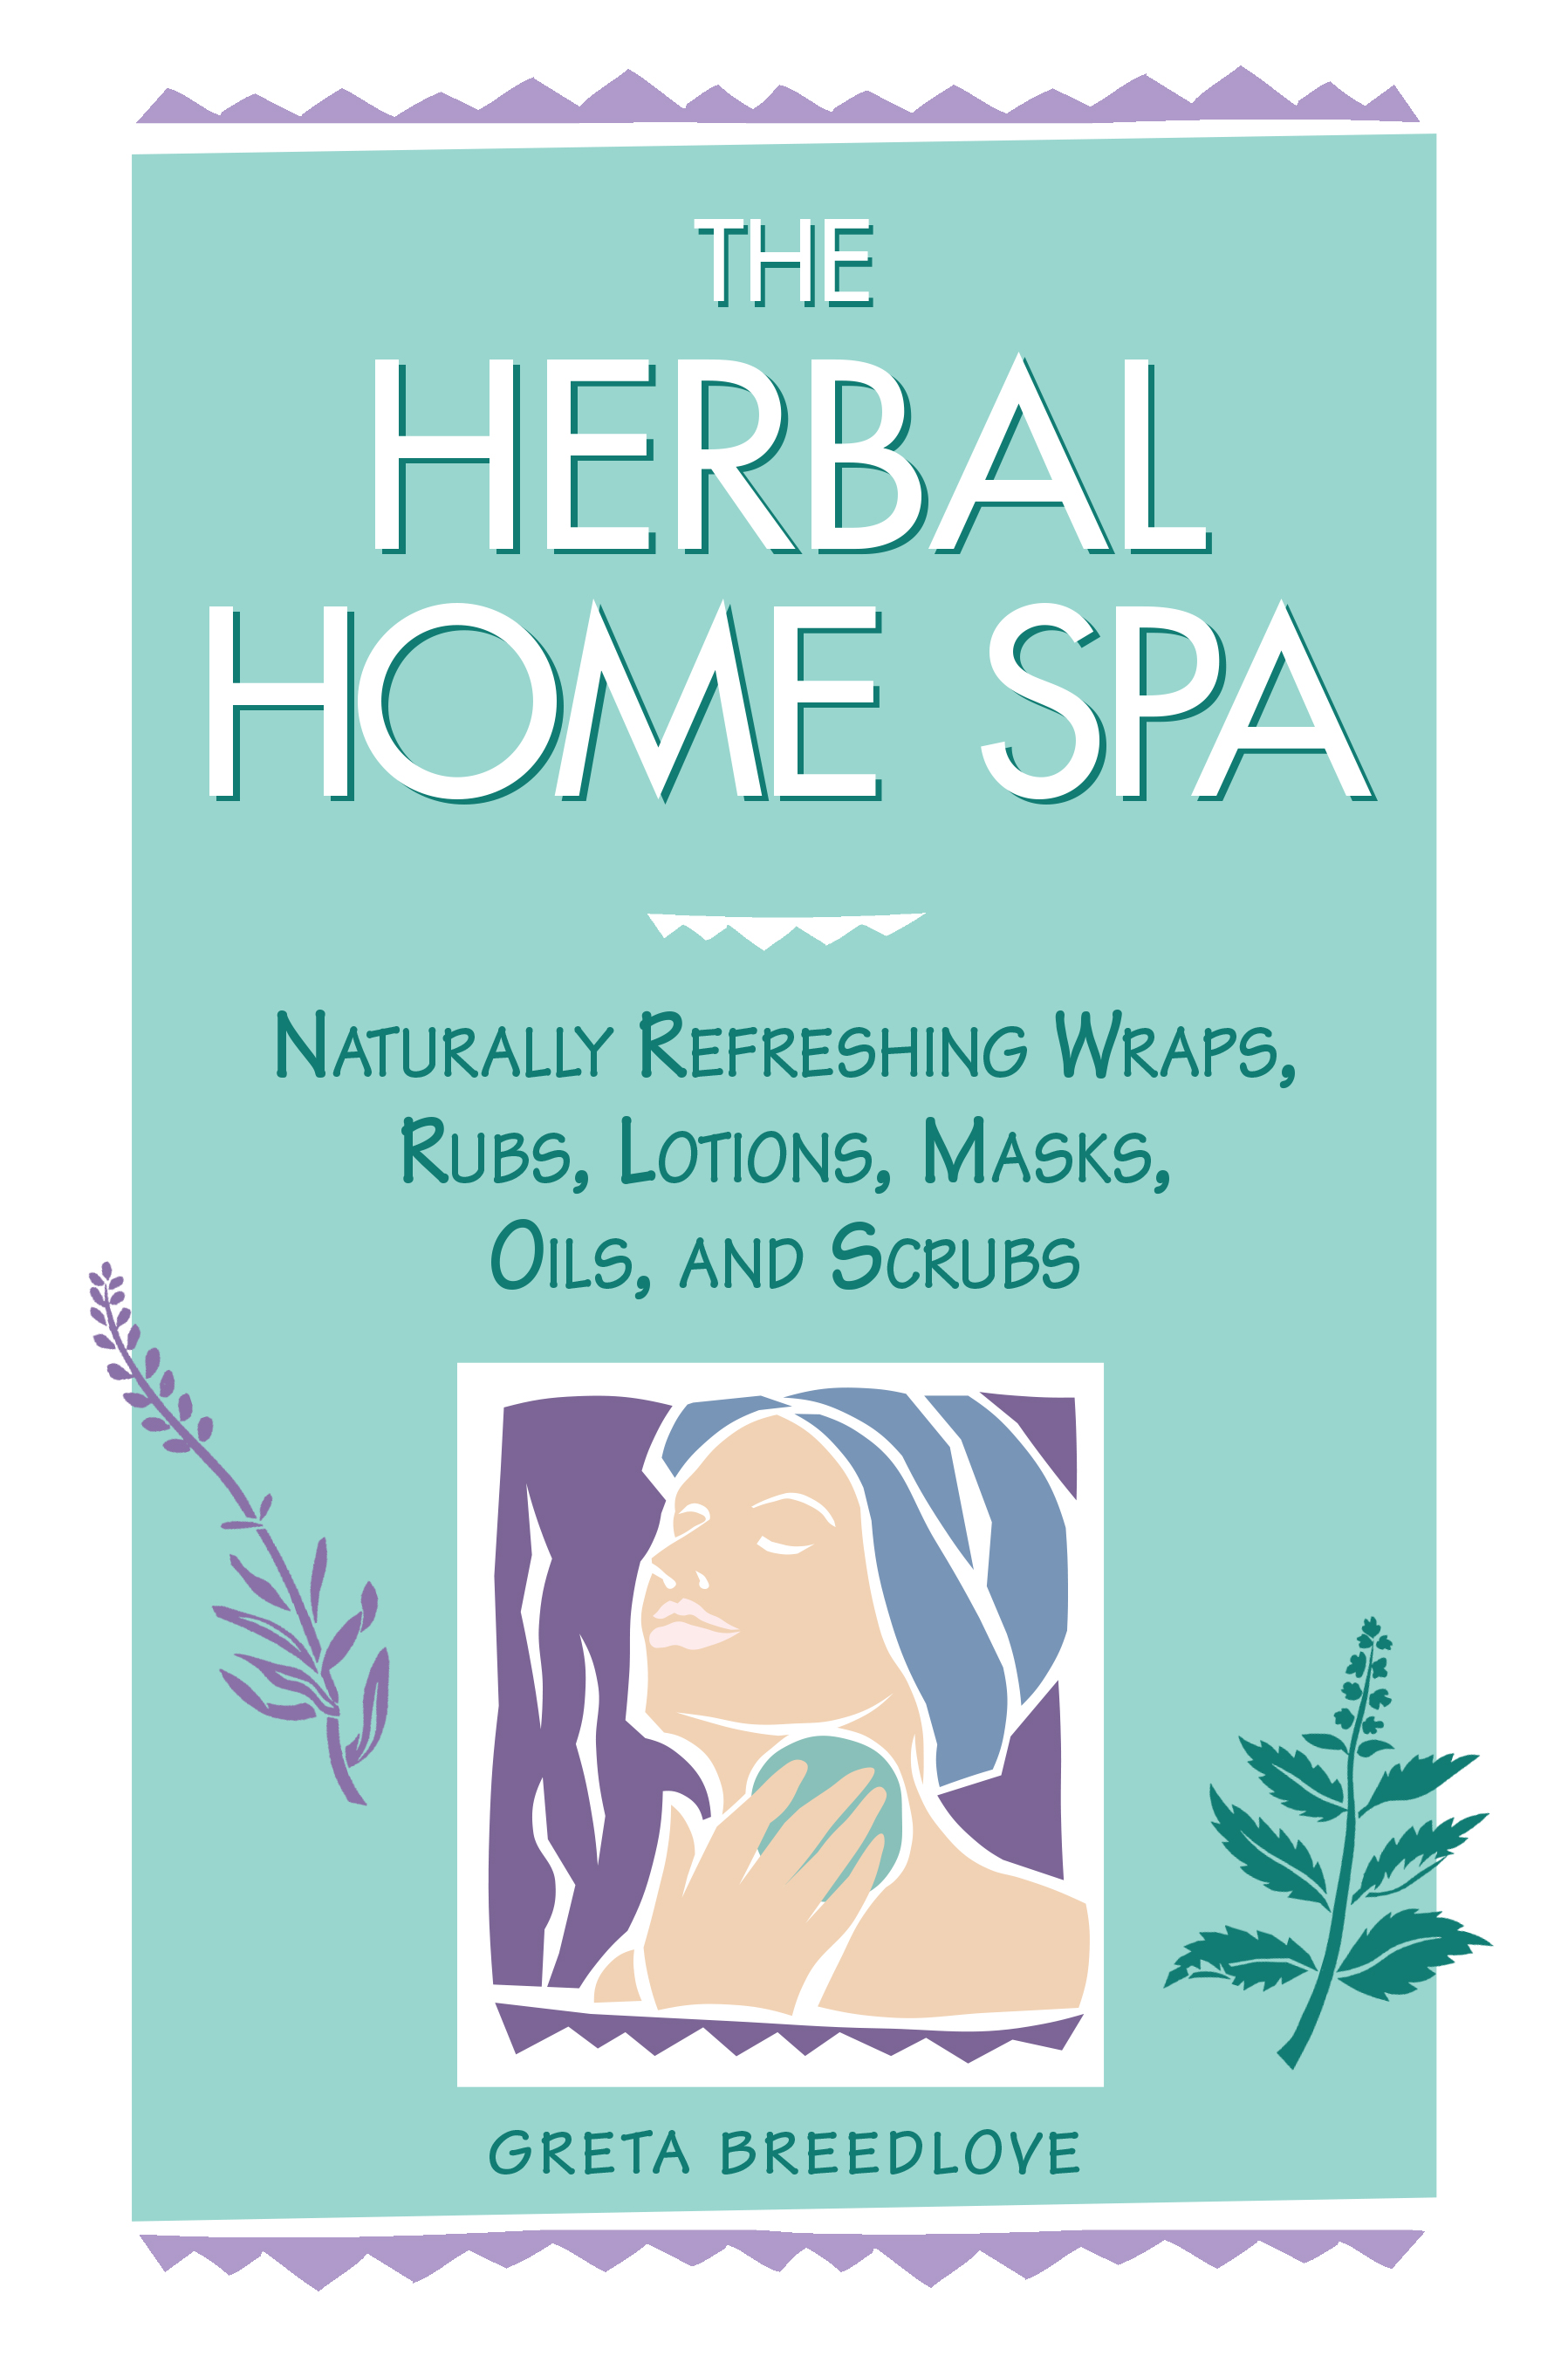 The Herbal Home Spa Naturally Refreshing Wraps, Rubs, Lotions, Masks, Oils, and Scrubs - Greta Breedlove